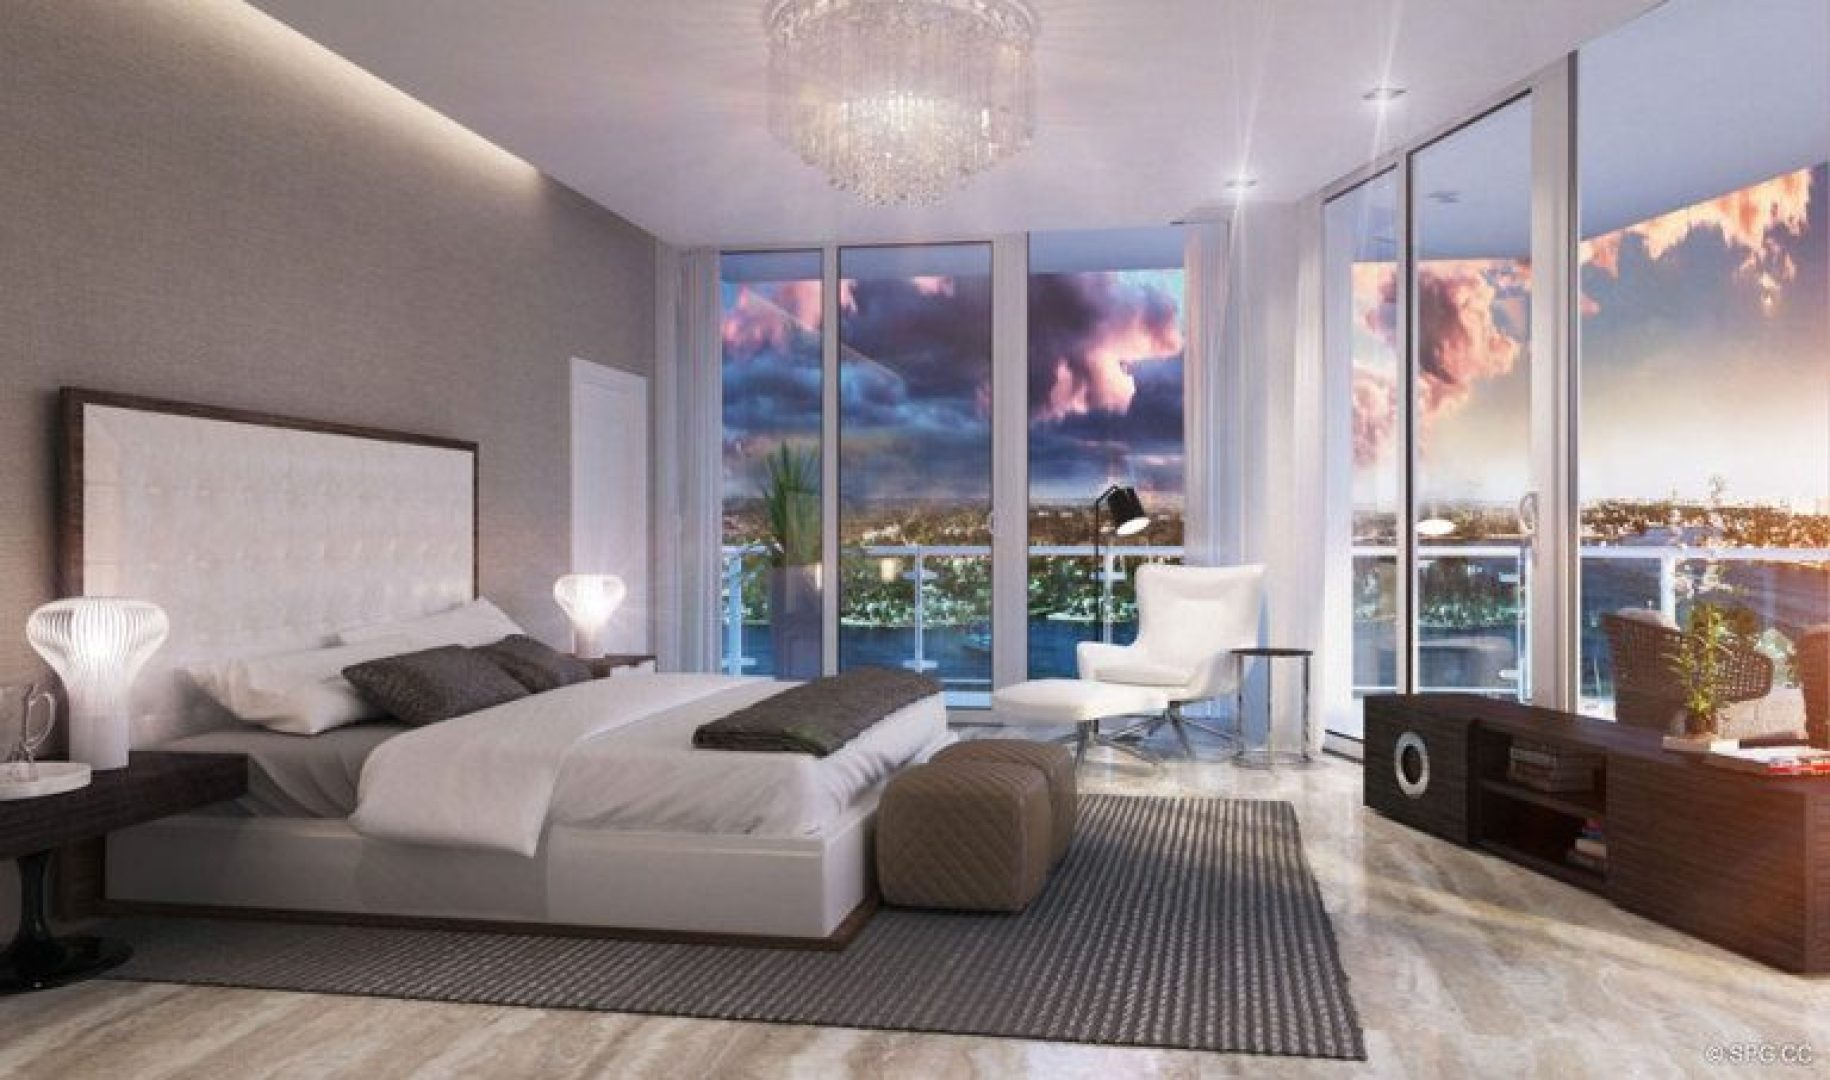 Bedroom Design at 33 Intracoastal, Luxury Waterfront Condominiums in Fort Lauderdale, Florida 33306